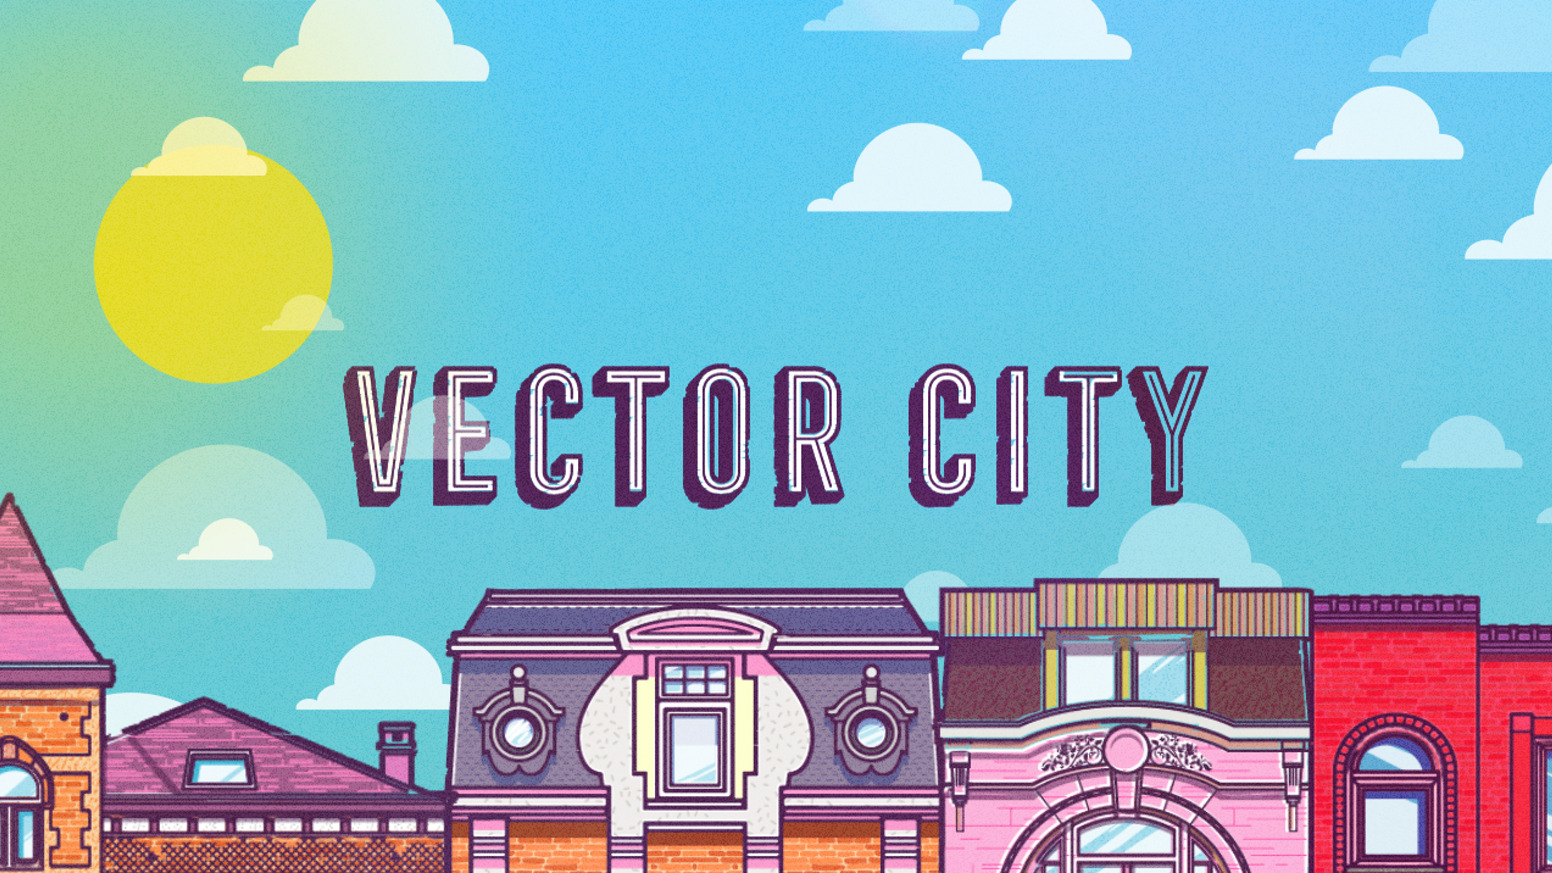 I will draw your house as well as 99 other houses from all over the world. Together these 100 houses will form a city. Vector City!